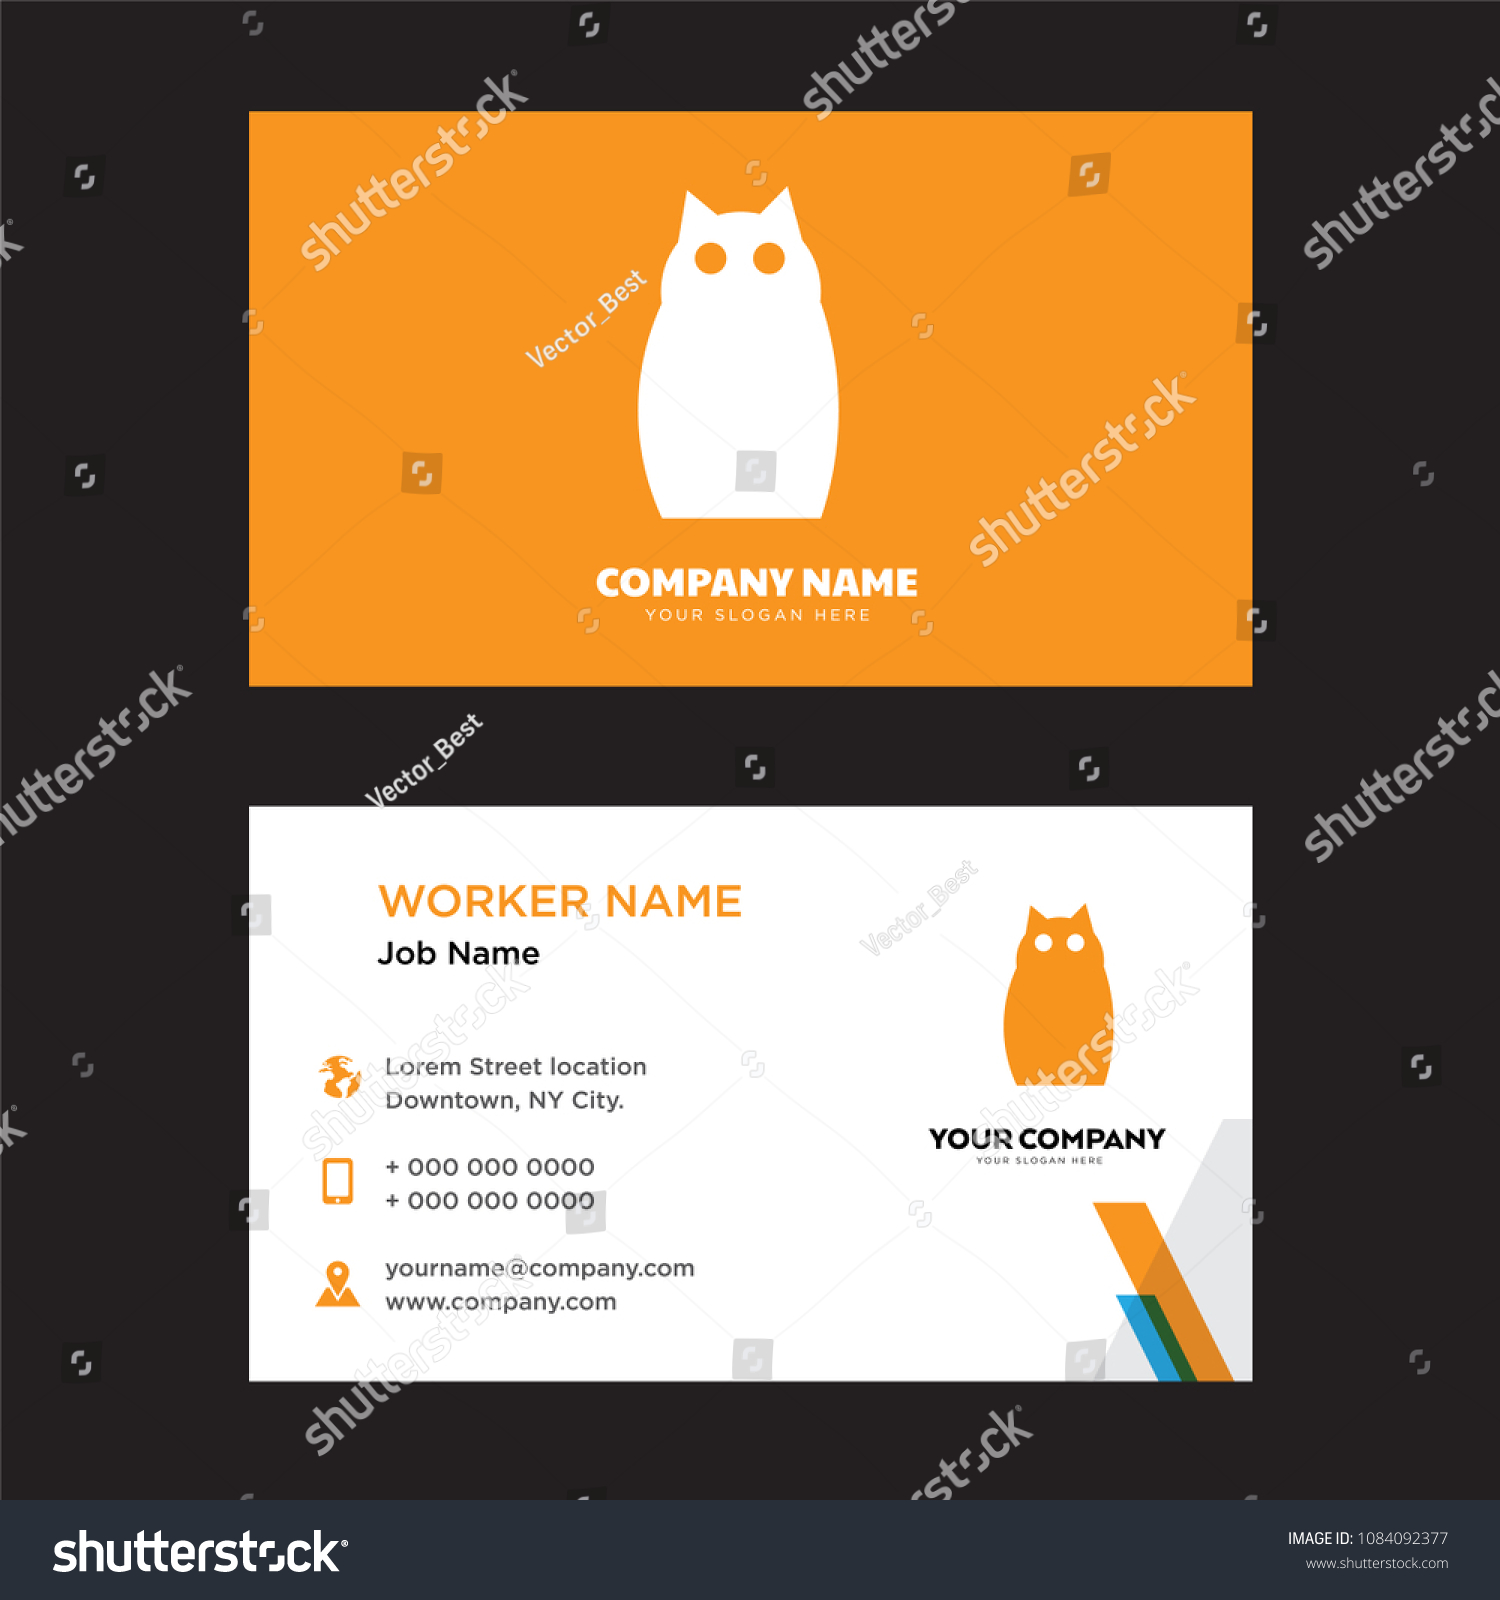 Owl Business Card Design Template Visiting Stock Vector 1084092377 ...